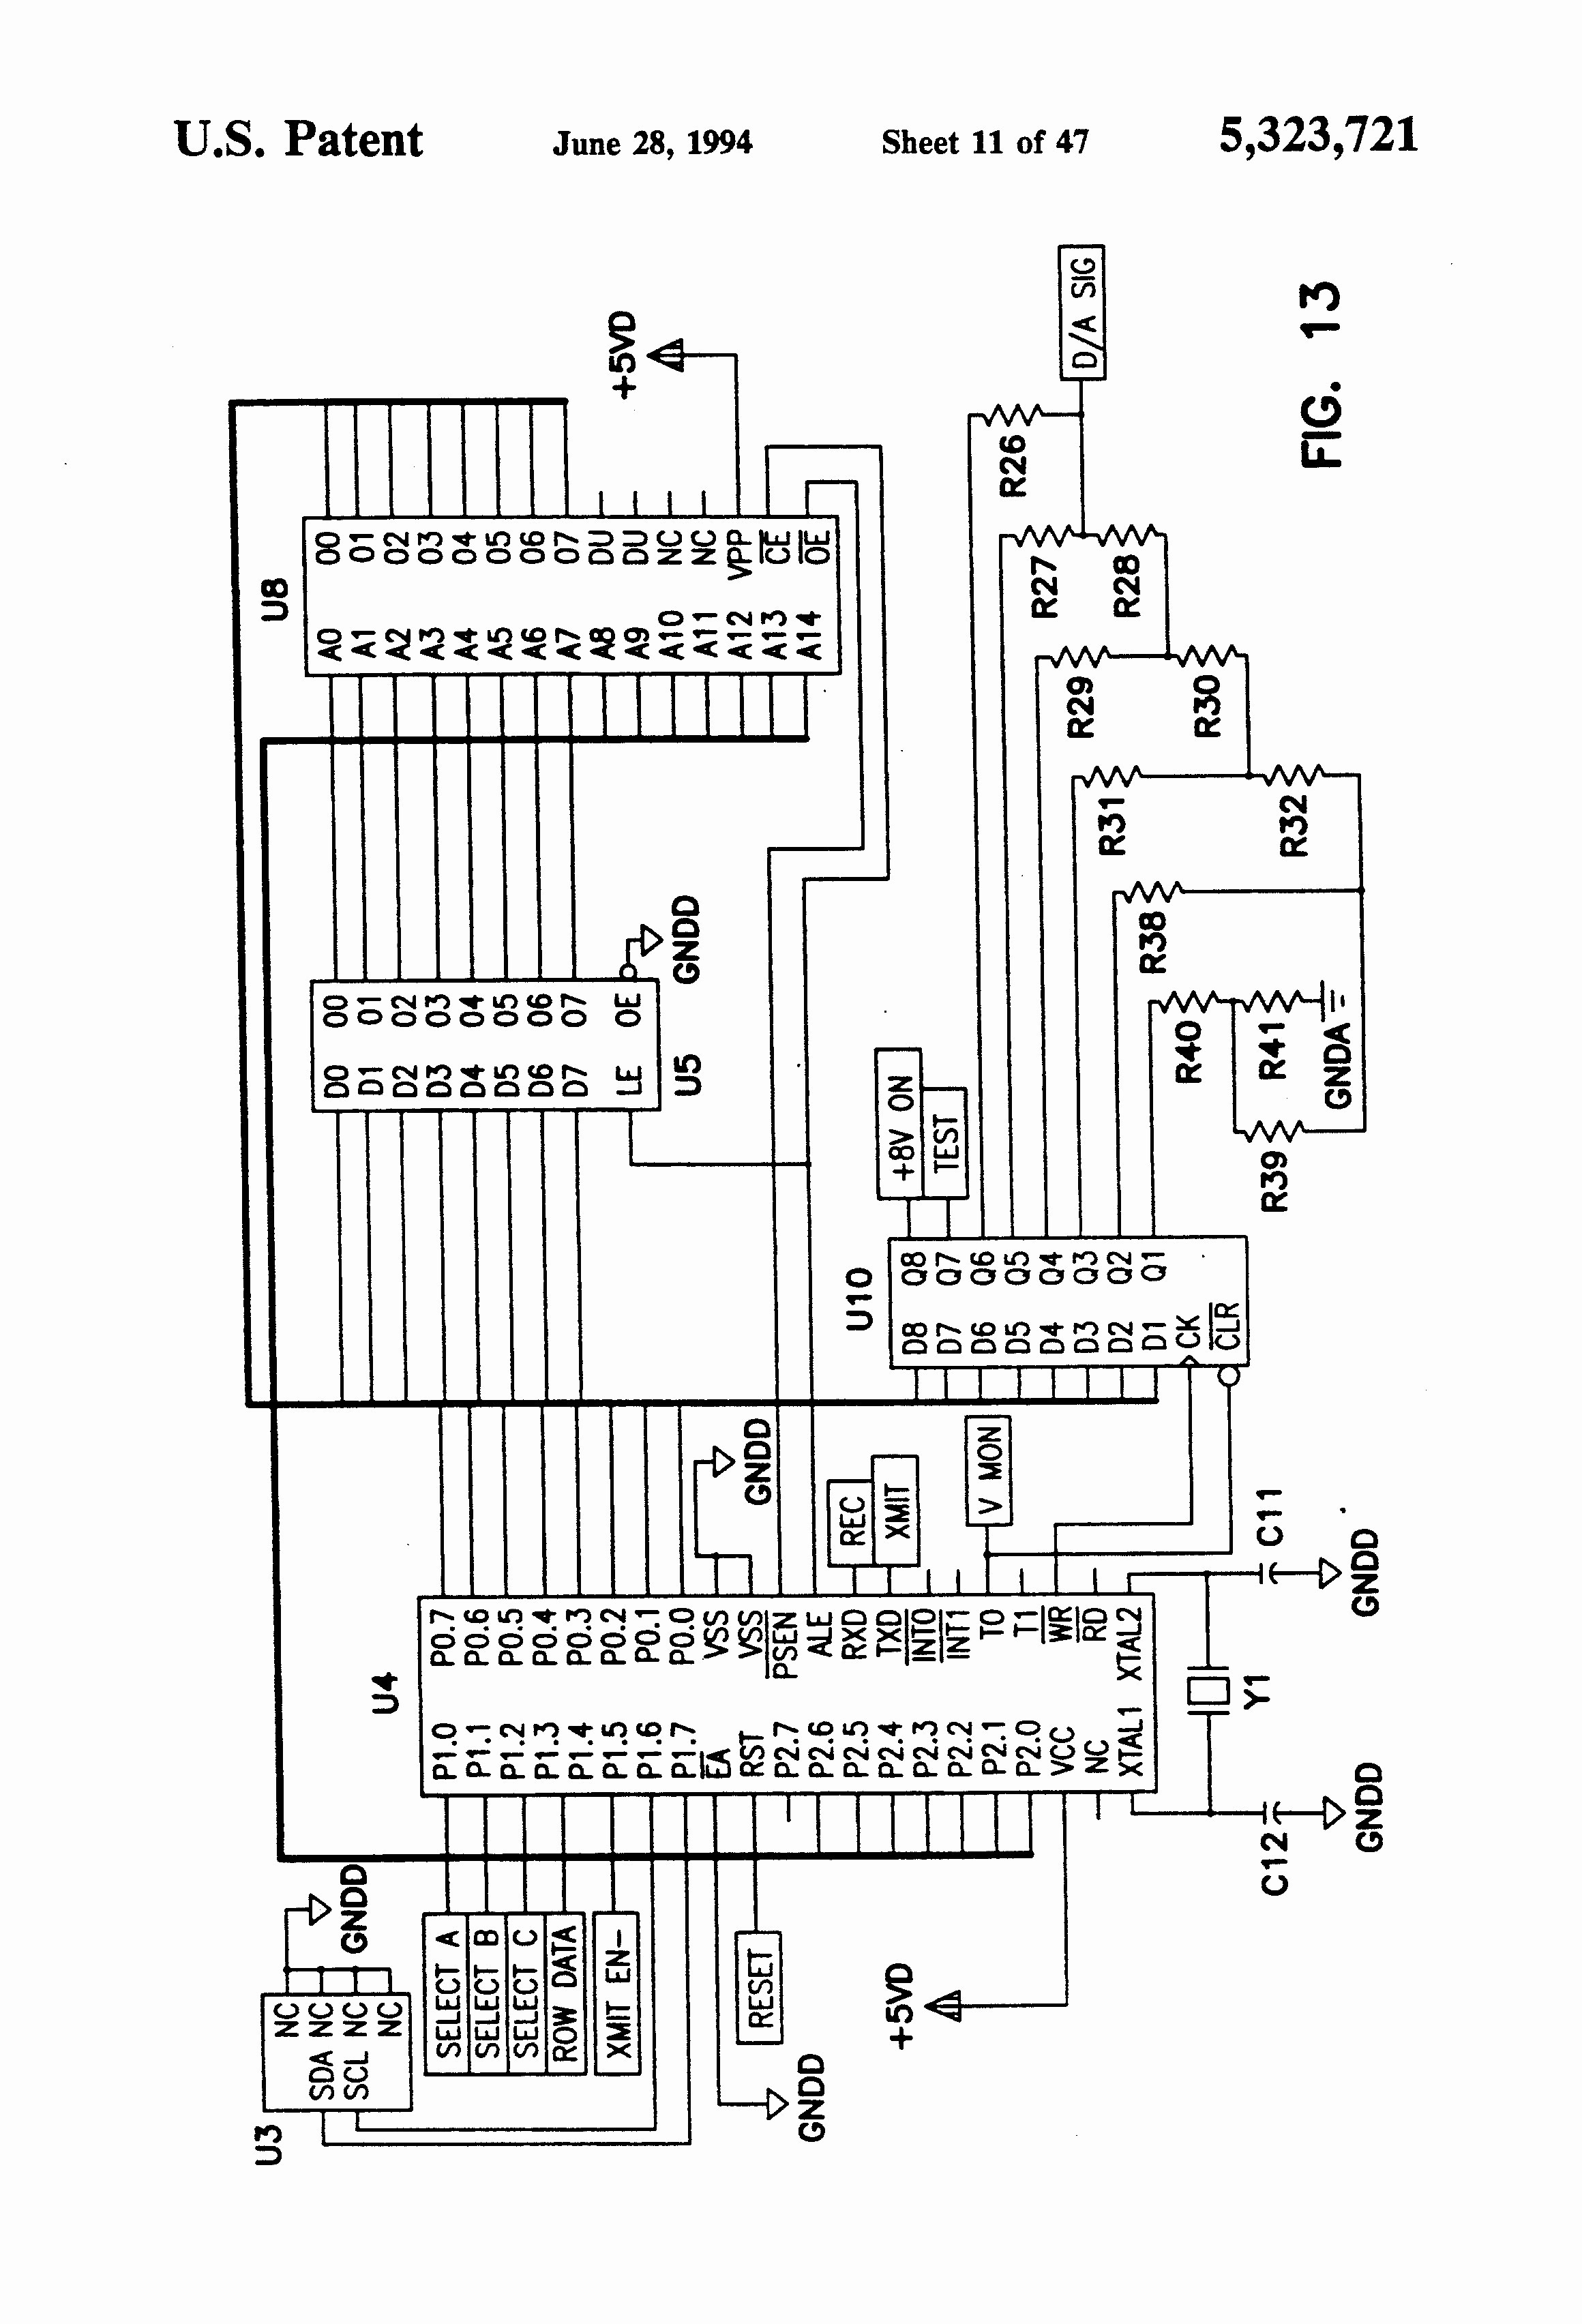 [SCHEMATICS_48EU]  John Deere Lx280 Wiring Diagram Diagram Base Website Wiring Diagram -  VENNDIAGRAMEXCEL.SMARTPROJECTS.IT | John Deere X300 Fuse Box Diagram |  | Diagram Base Website Full Edition - smartprojects